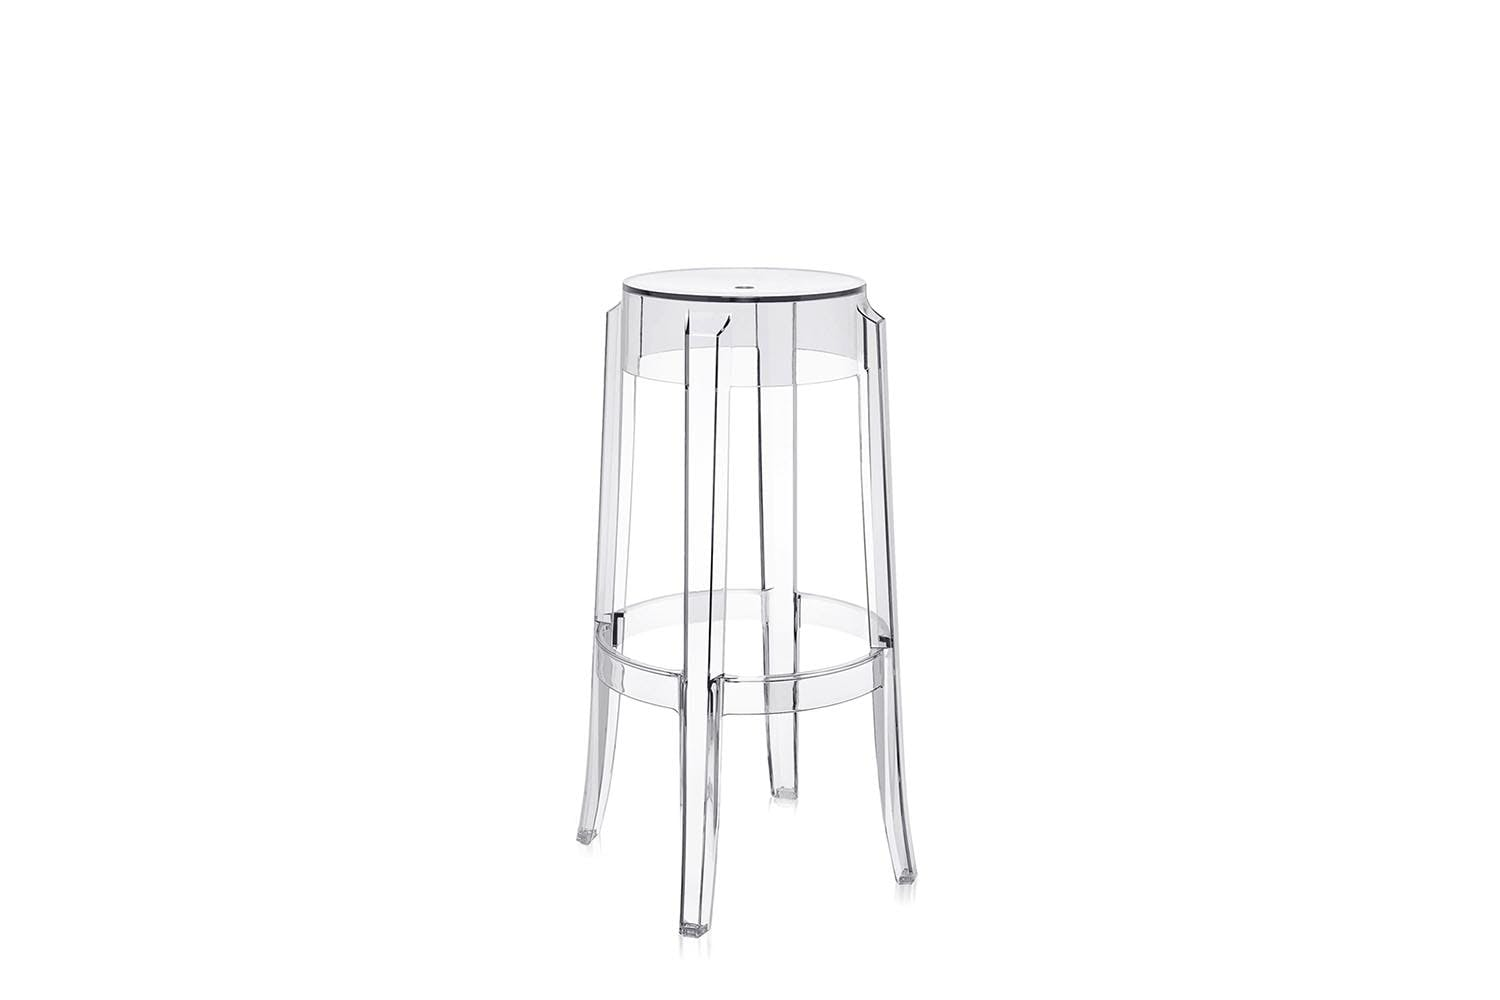 charles ghost high stool by philippe starck for kartell space